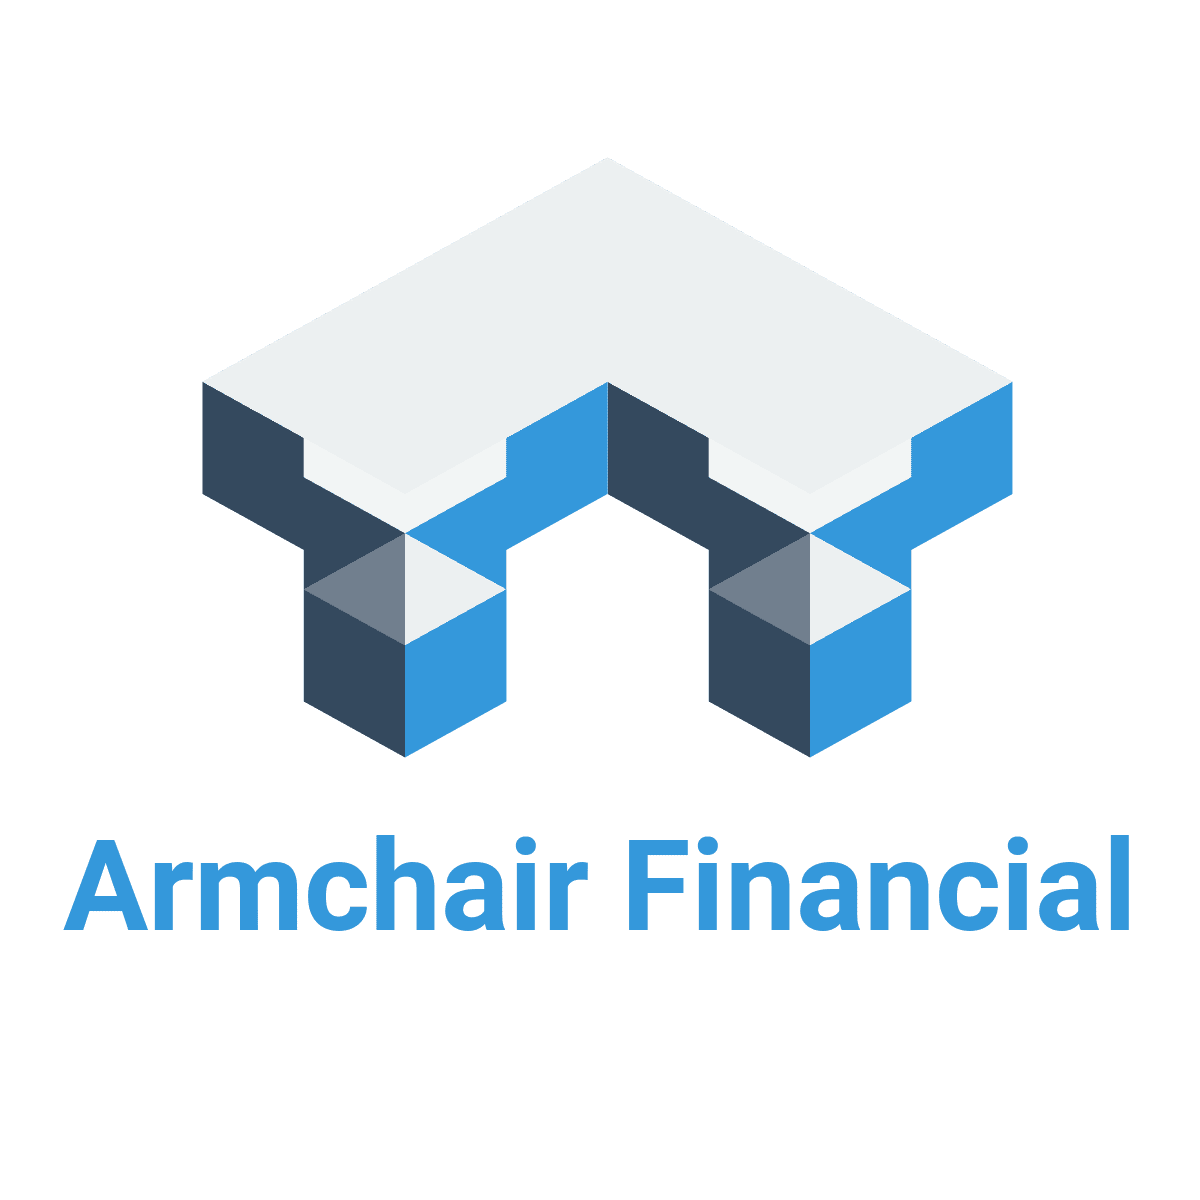 Armchair Financial